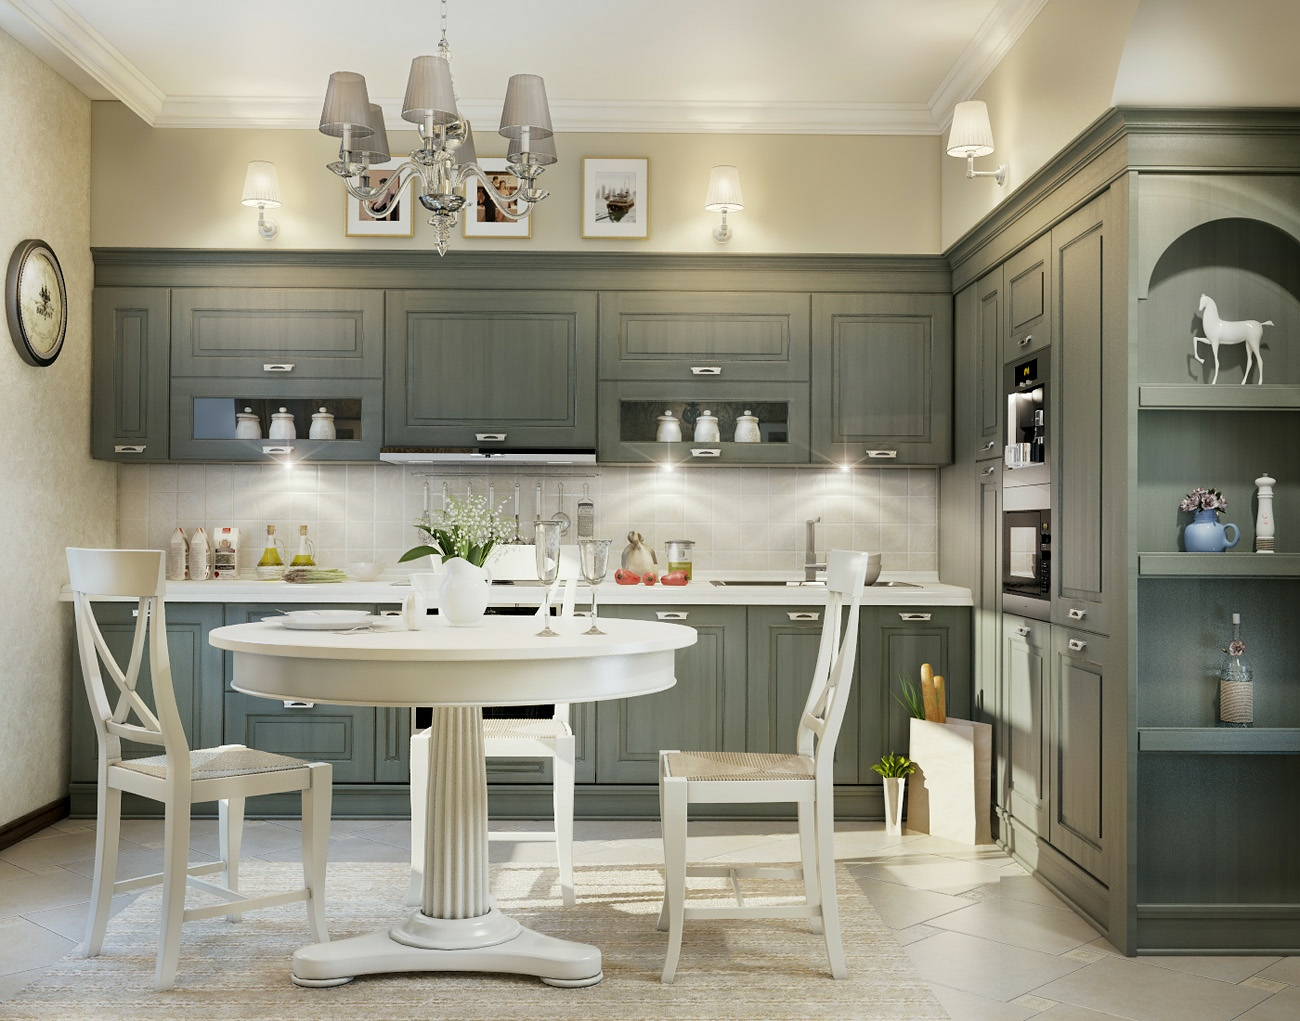 11 luxurious traditional kitchens Gray and white kitchen ideas